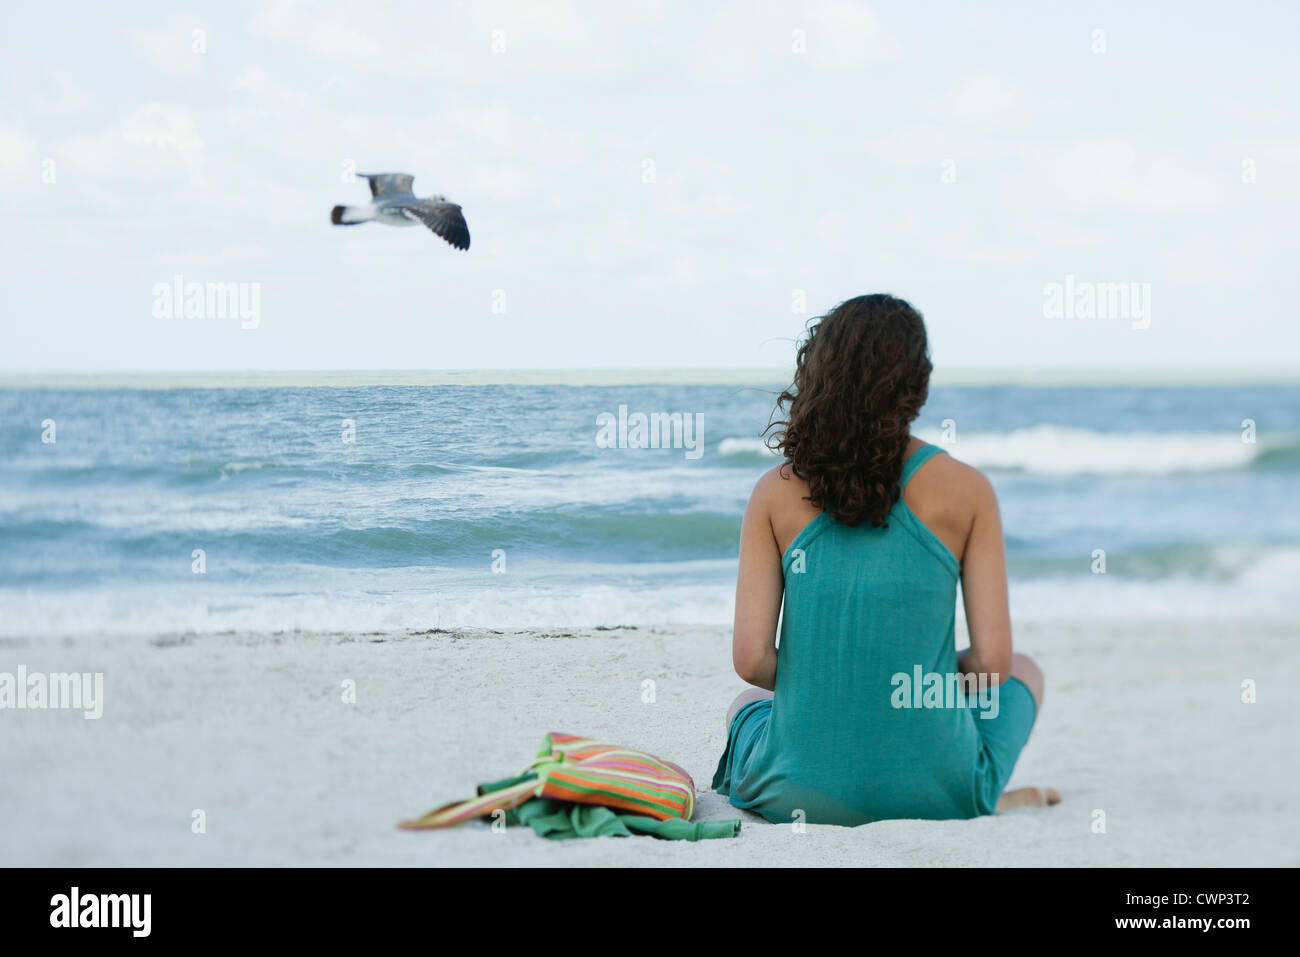 Teenage girl sitting on beach looking at ocean, rear view - Stock Image